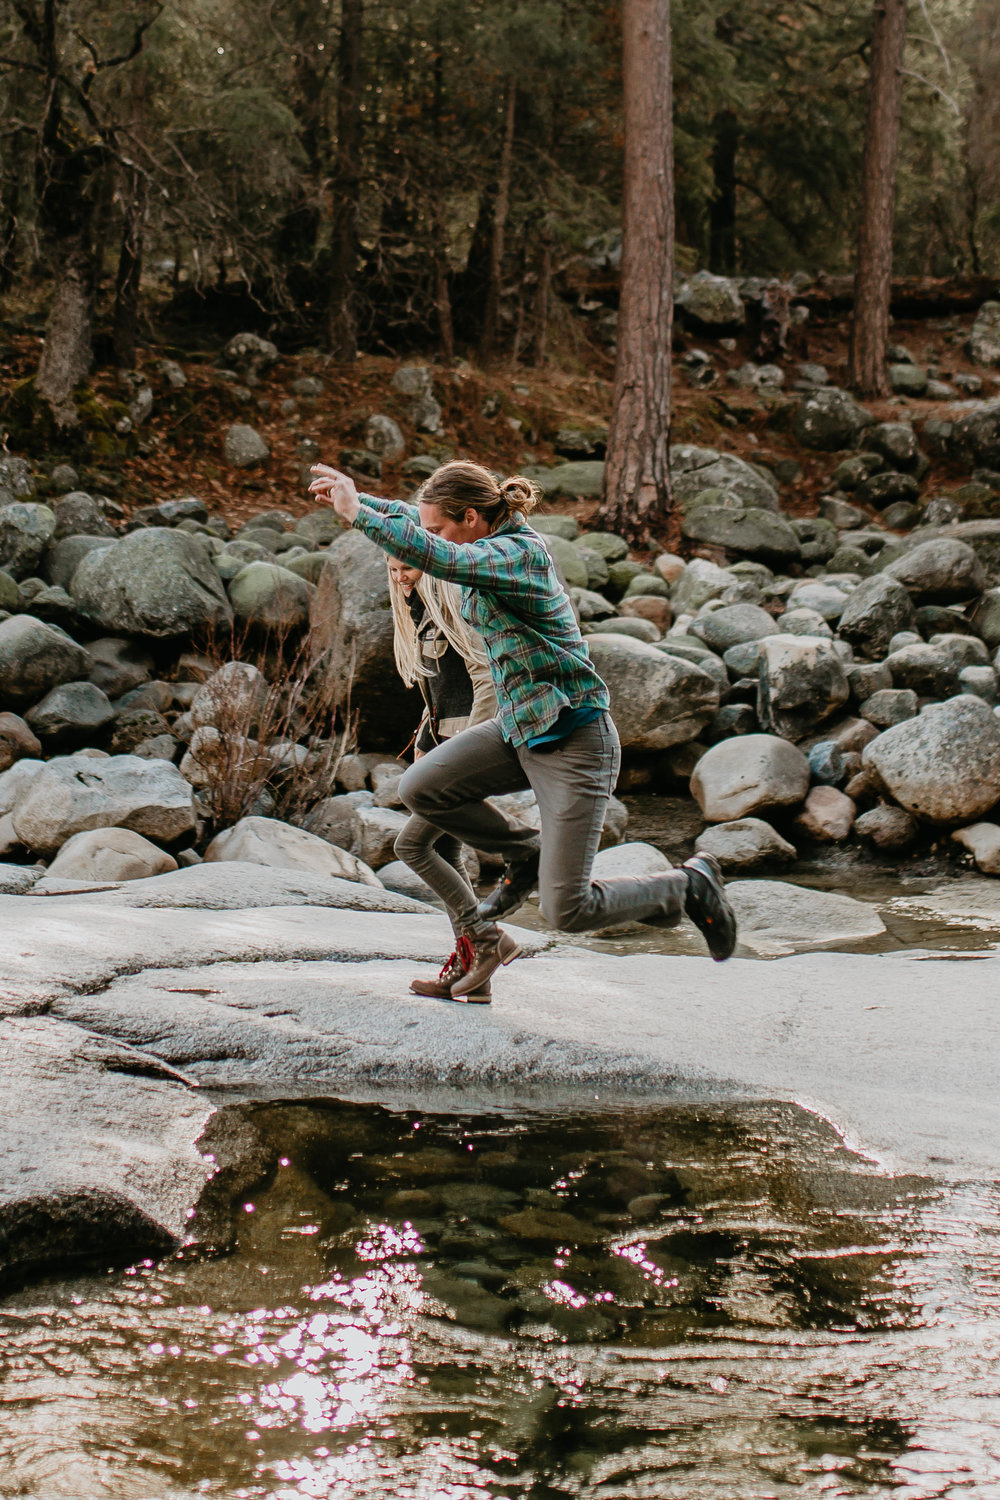 nicole-daacke-photography-yosemite-riverside-adventurous-engagement-photos-in-yosemite-national-park-elopement-photographer-weddings-travel-destination-wedding-eloping-elope-pine-forest-3.jpg